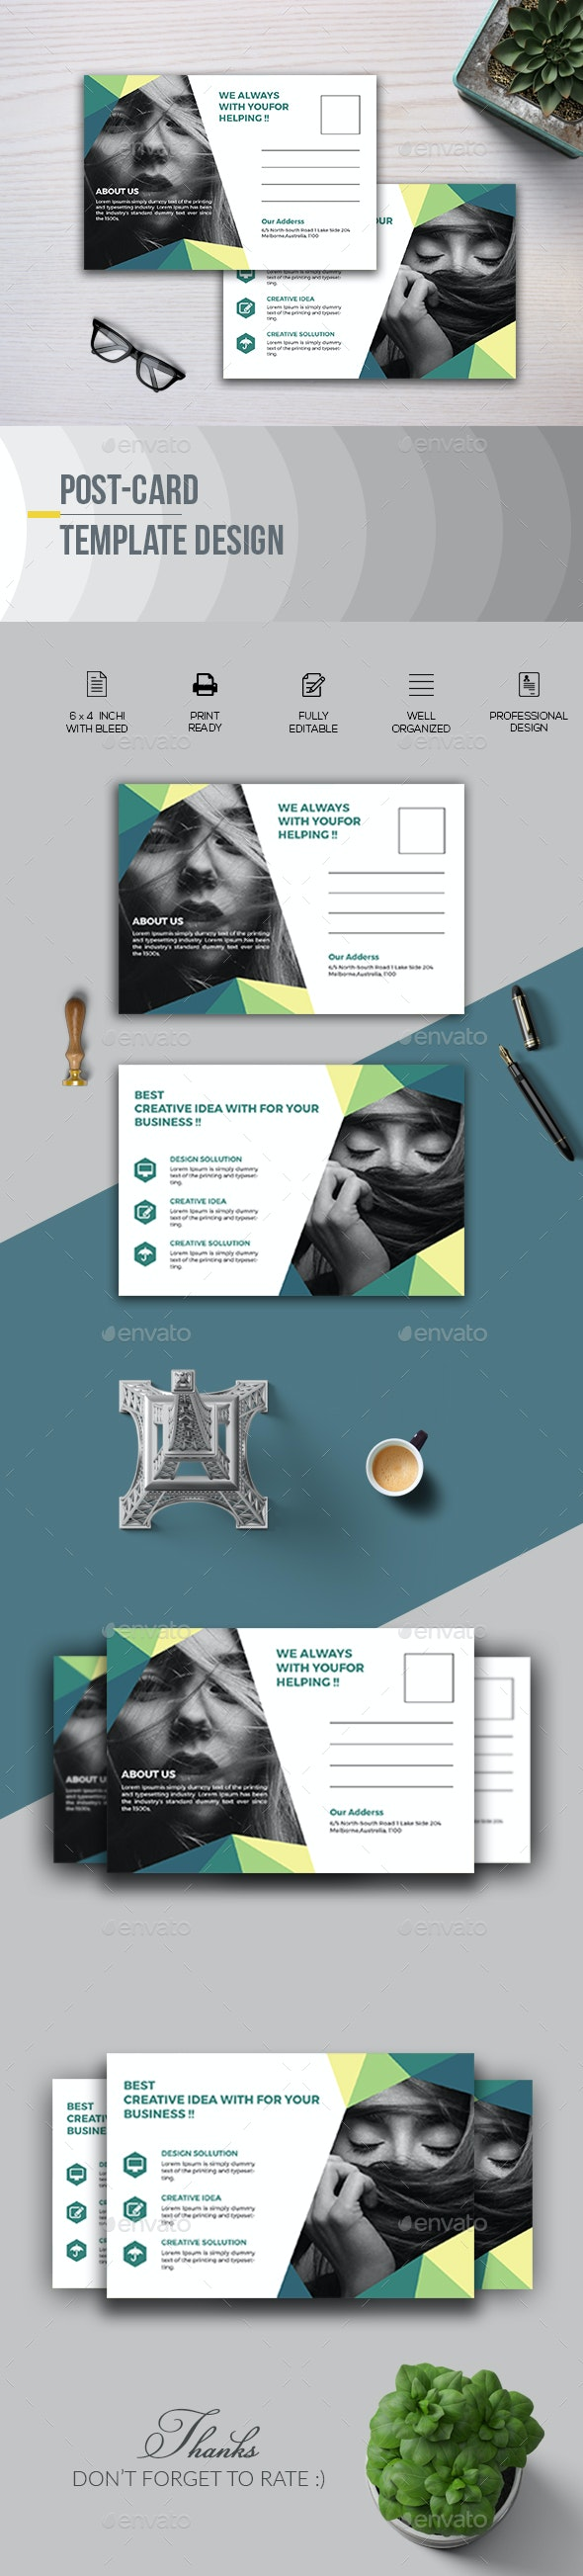 Post Card Template - Cards & Invites Print Templates